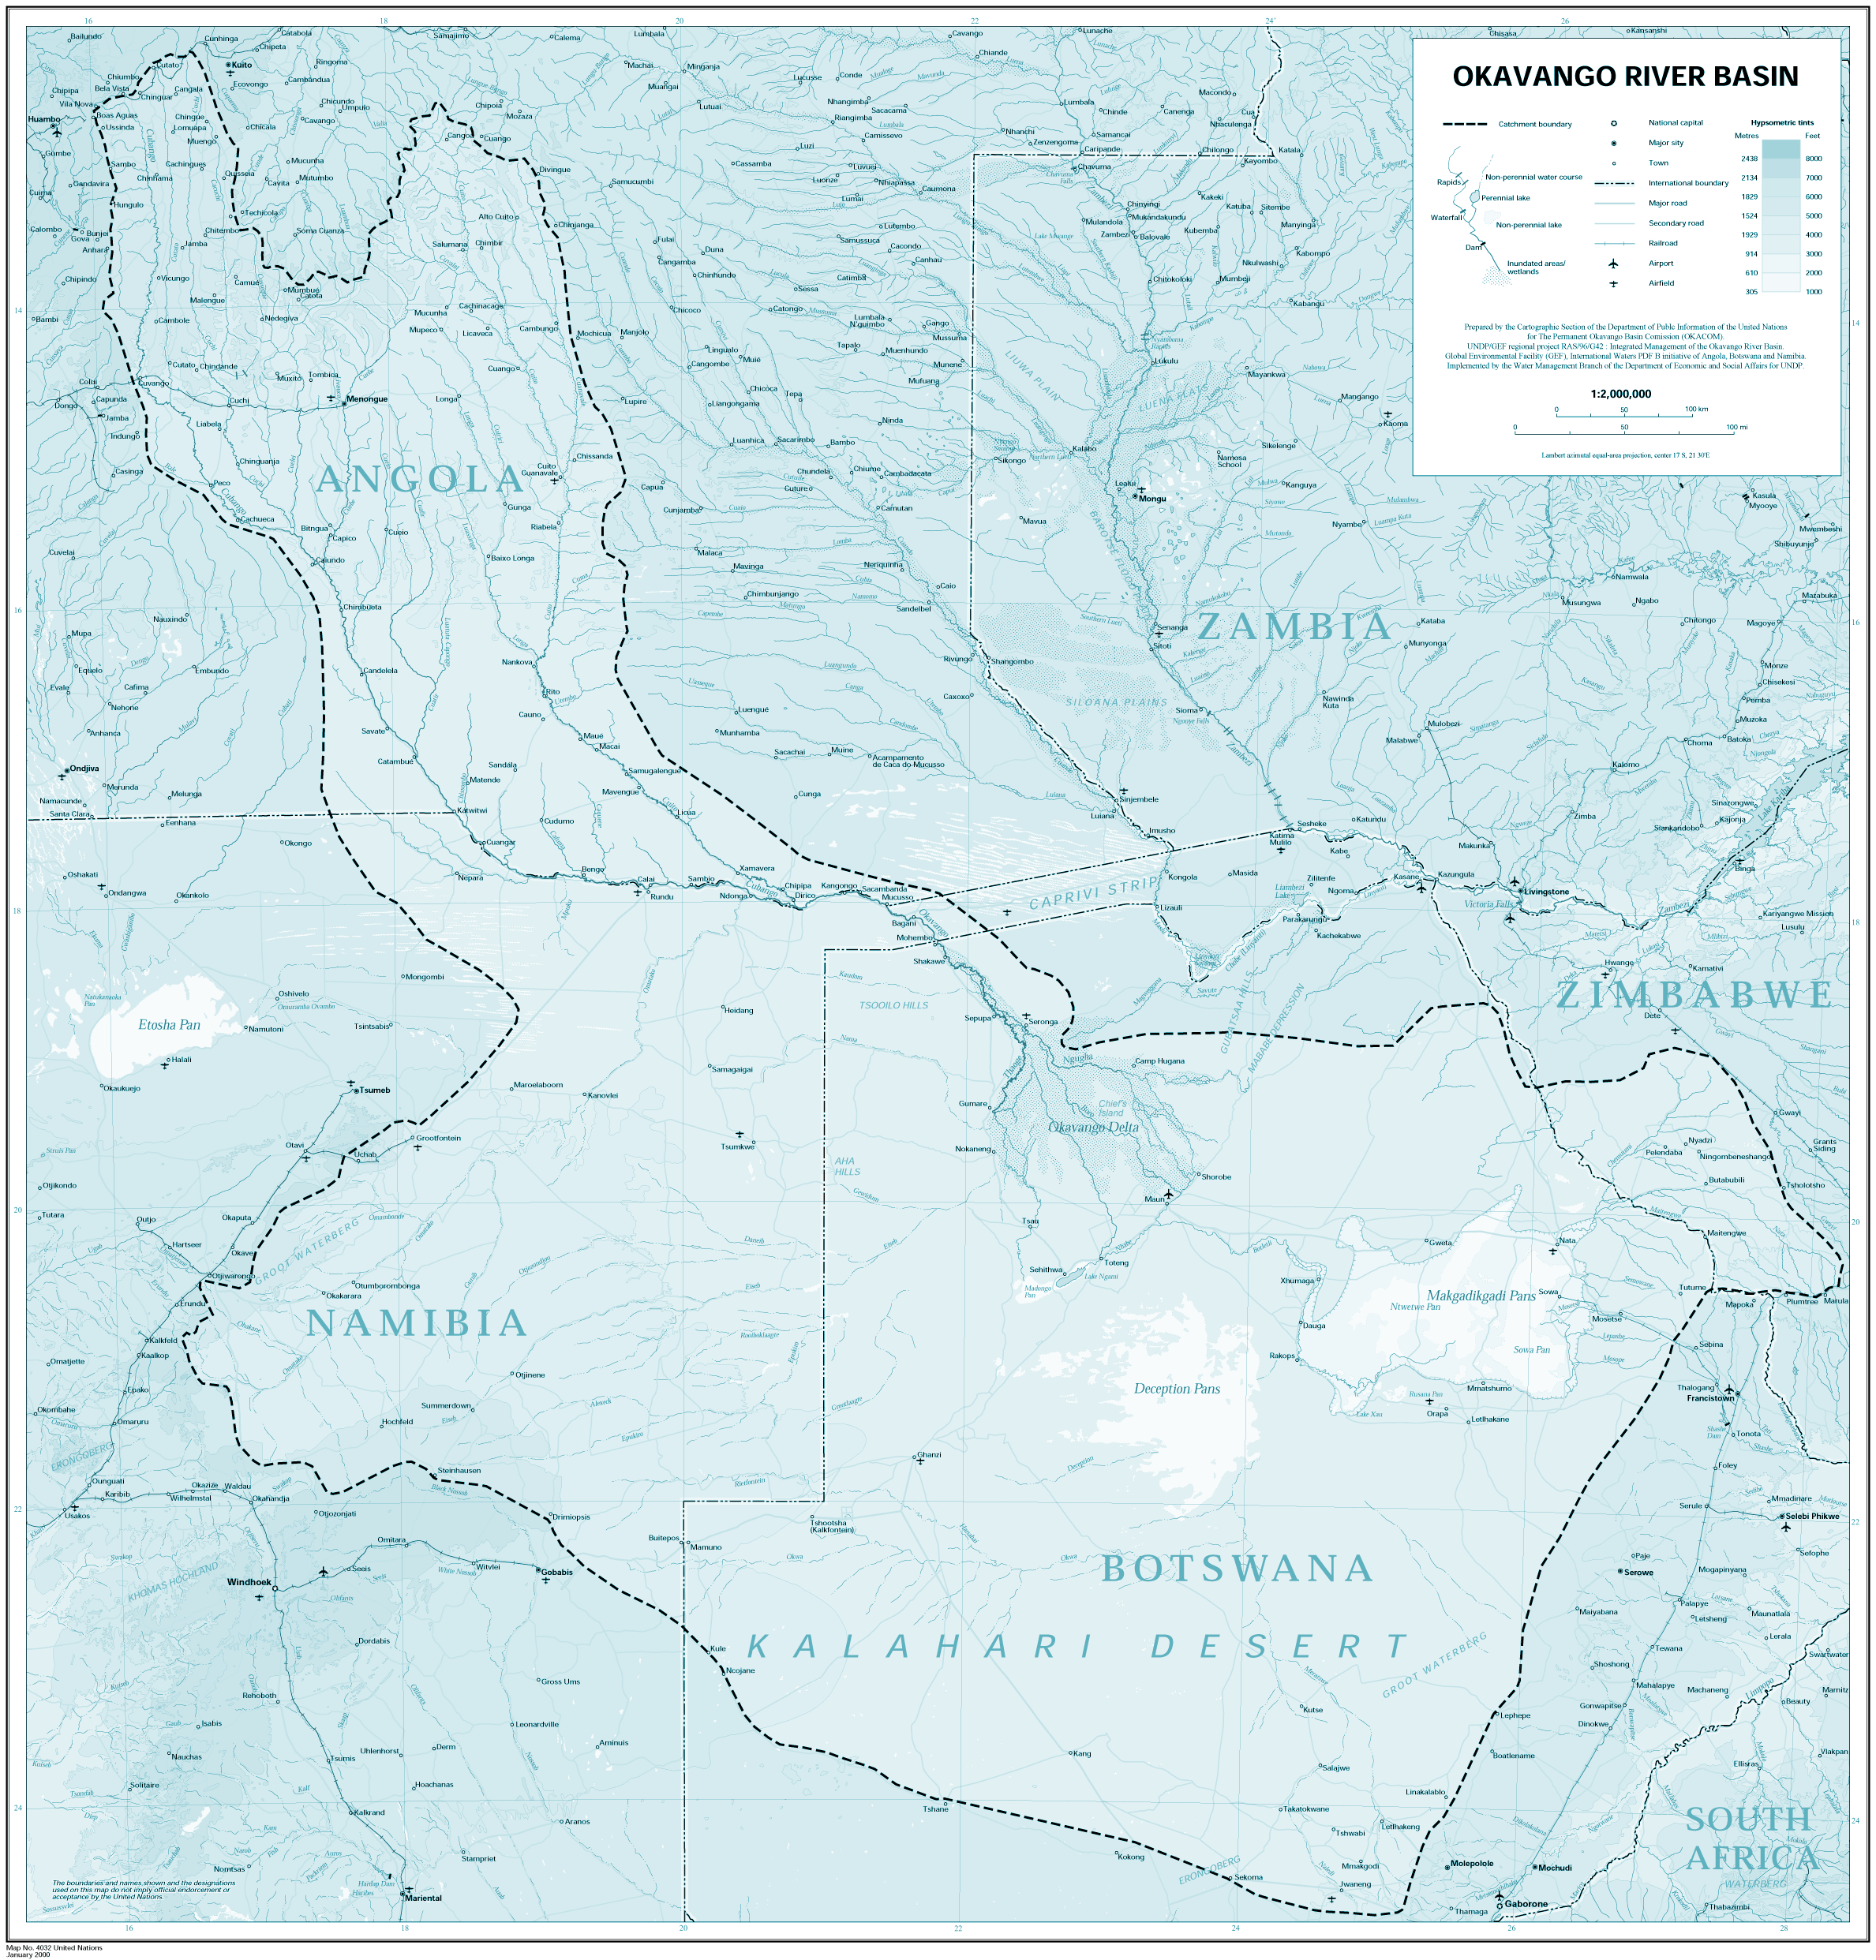 Okavango large map